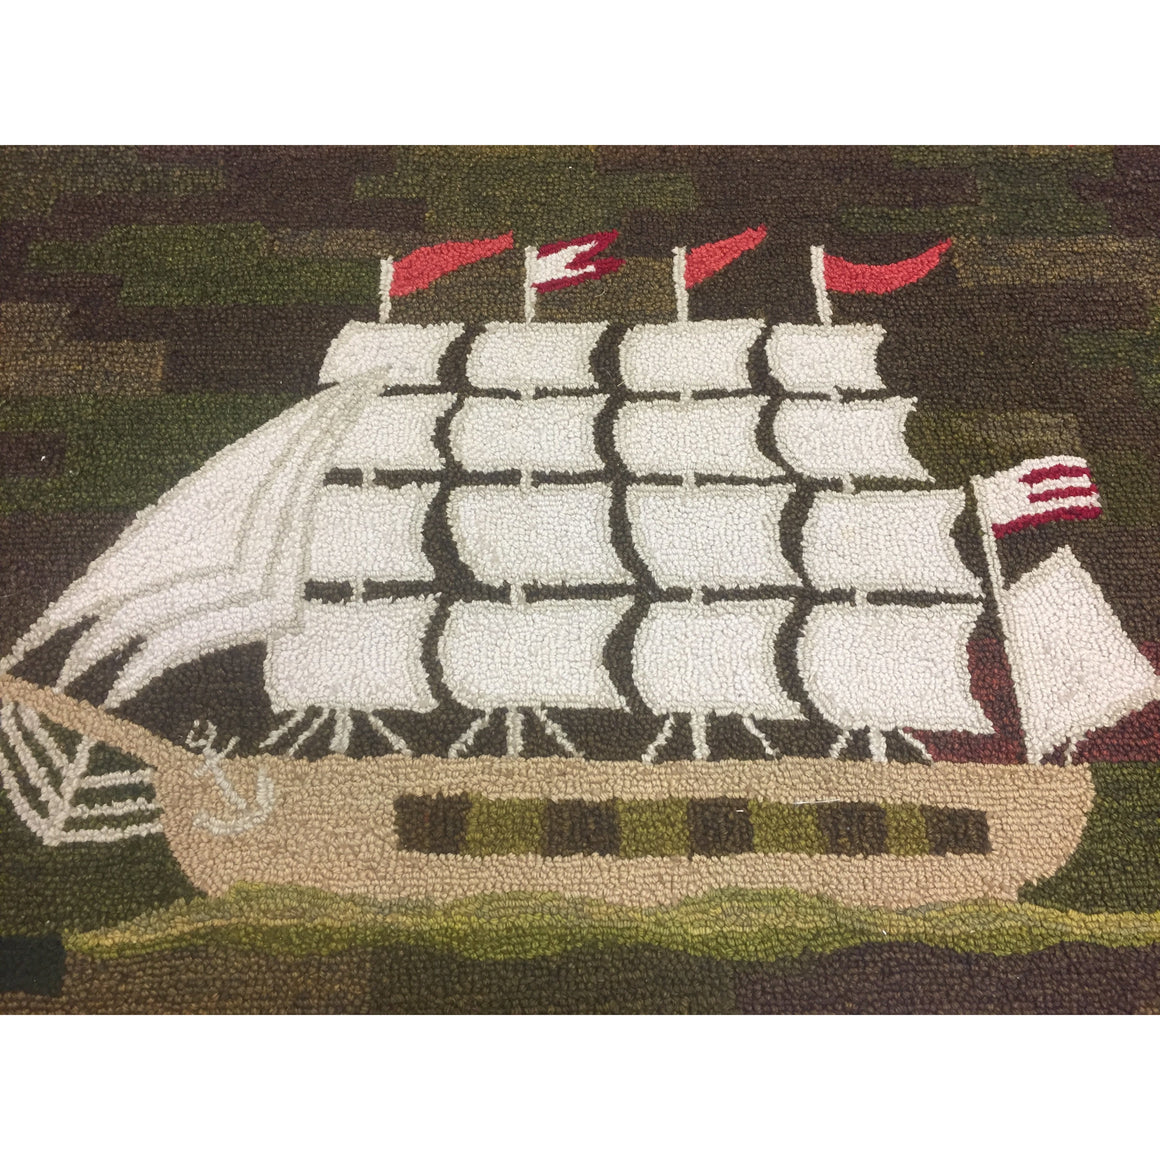 'Clipper Ship' Hand-Loomed Rug 1959 by George Wells of Locust Valley, L.I.